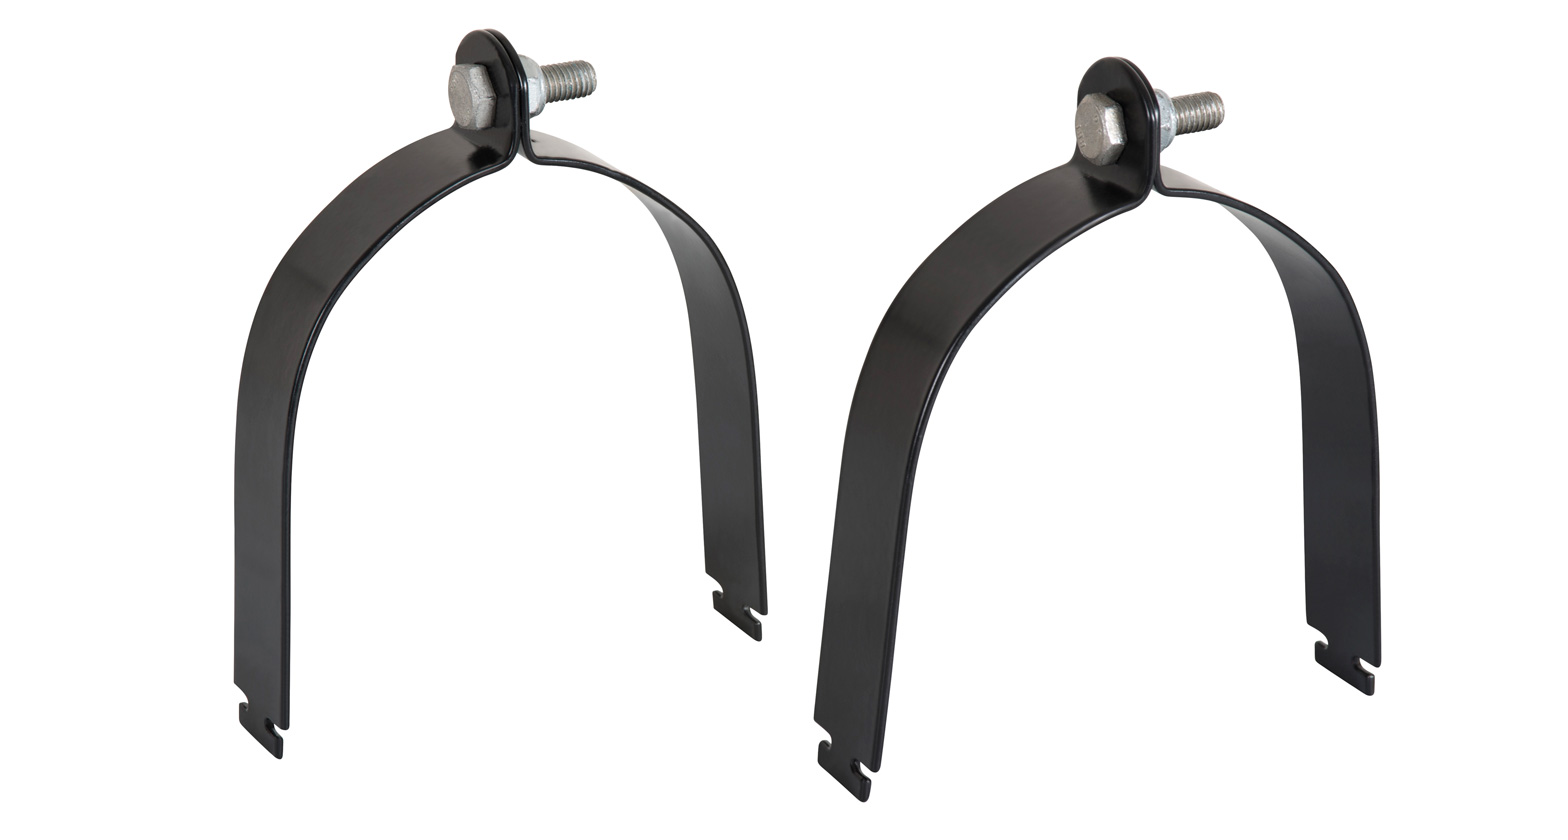 Vortex Pipe Clamps (100mm/4inches)